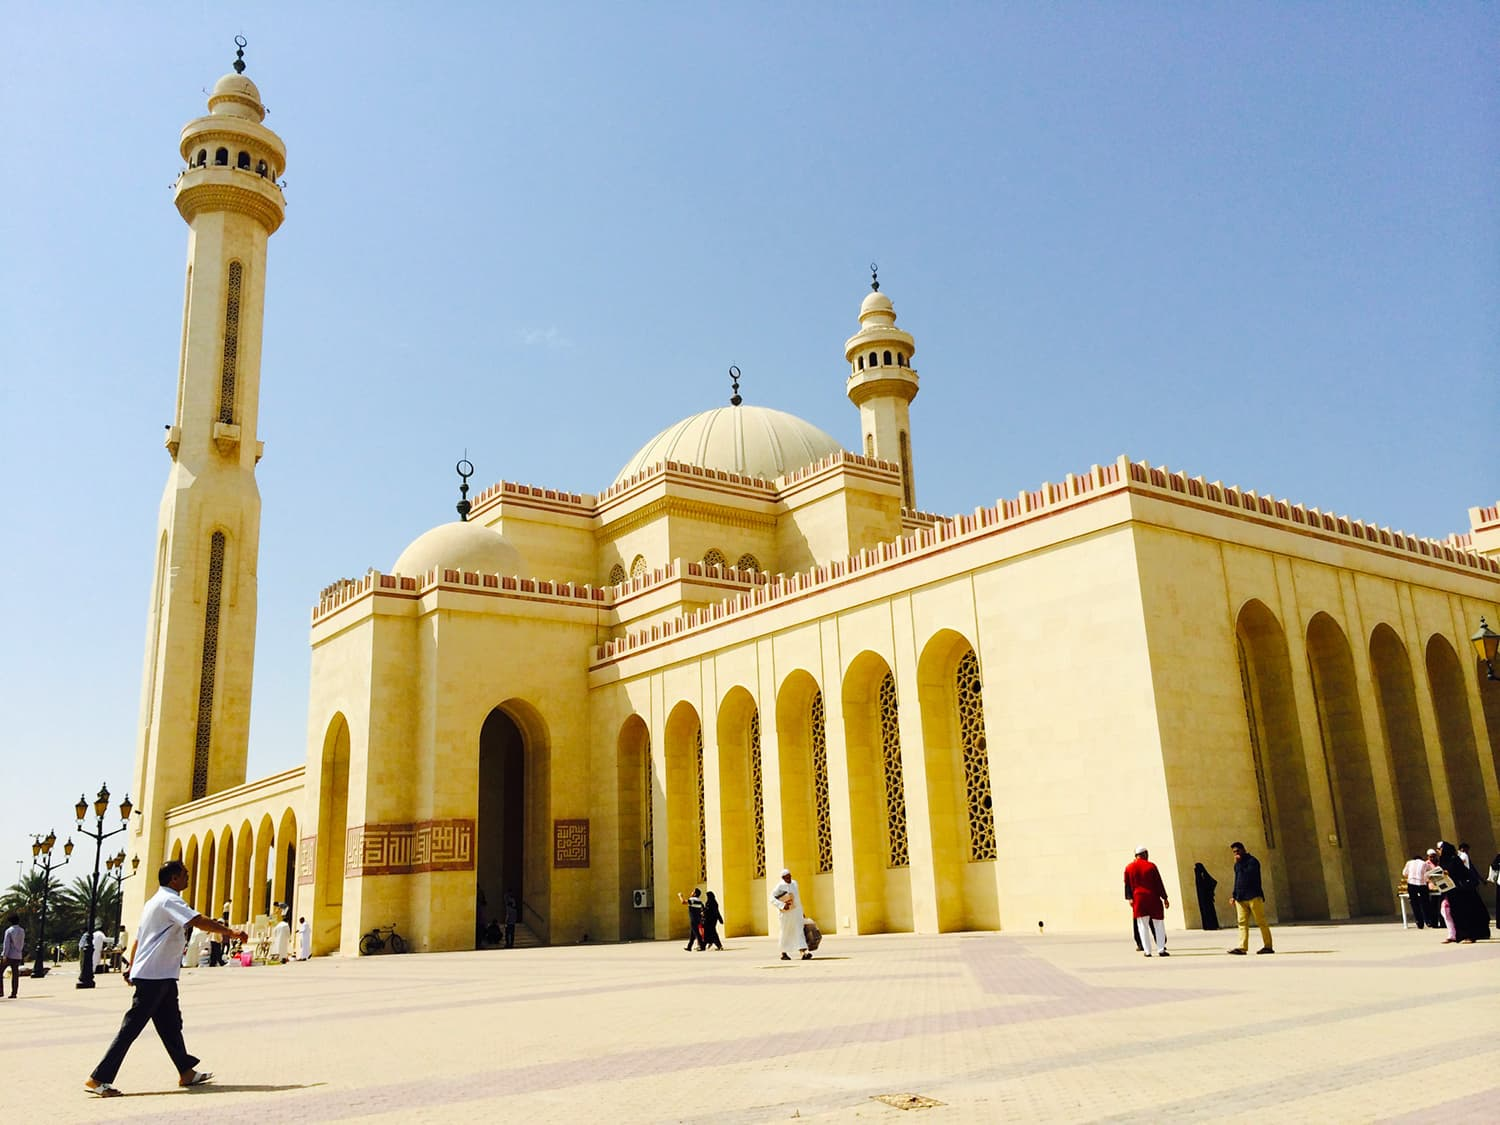 The Al Fateh Grand Mosque from the outside.